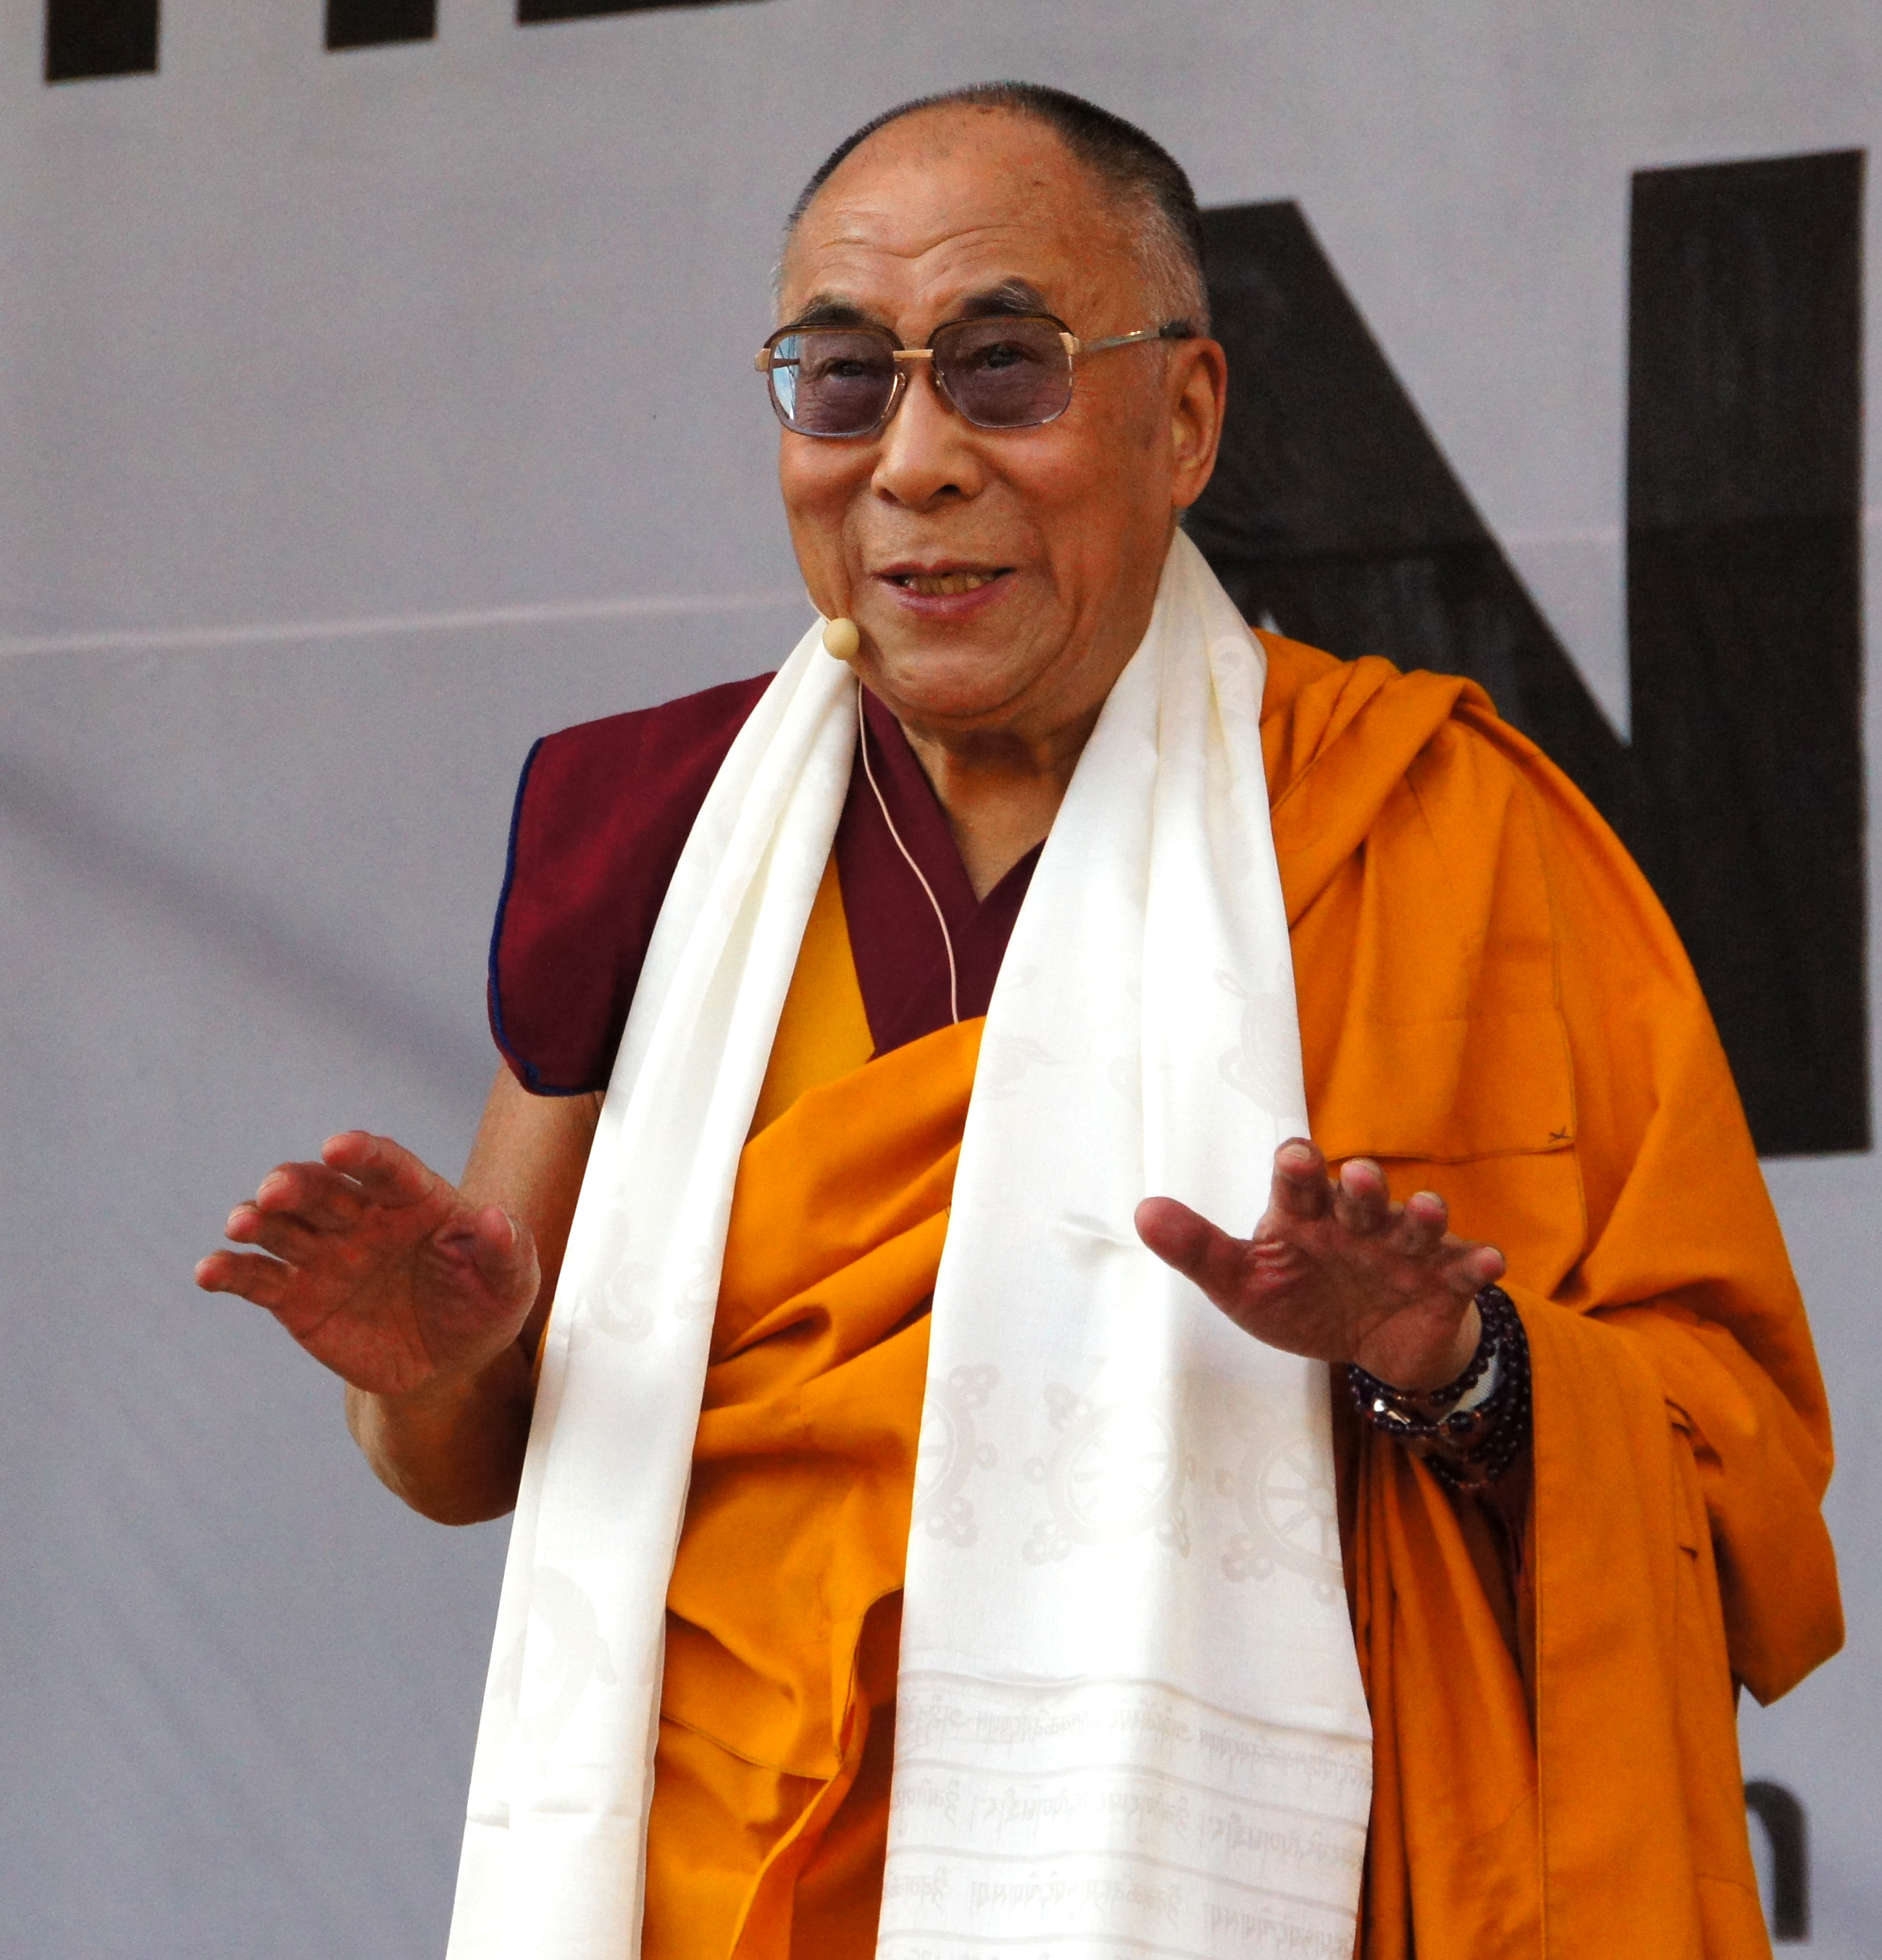 objectives outline and introduction principles of public speaking dalai lama wearing a white sash and saffron robes hands outstretched facing down middot